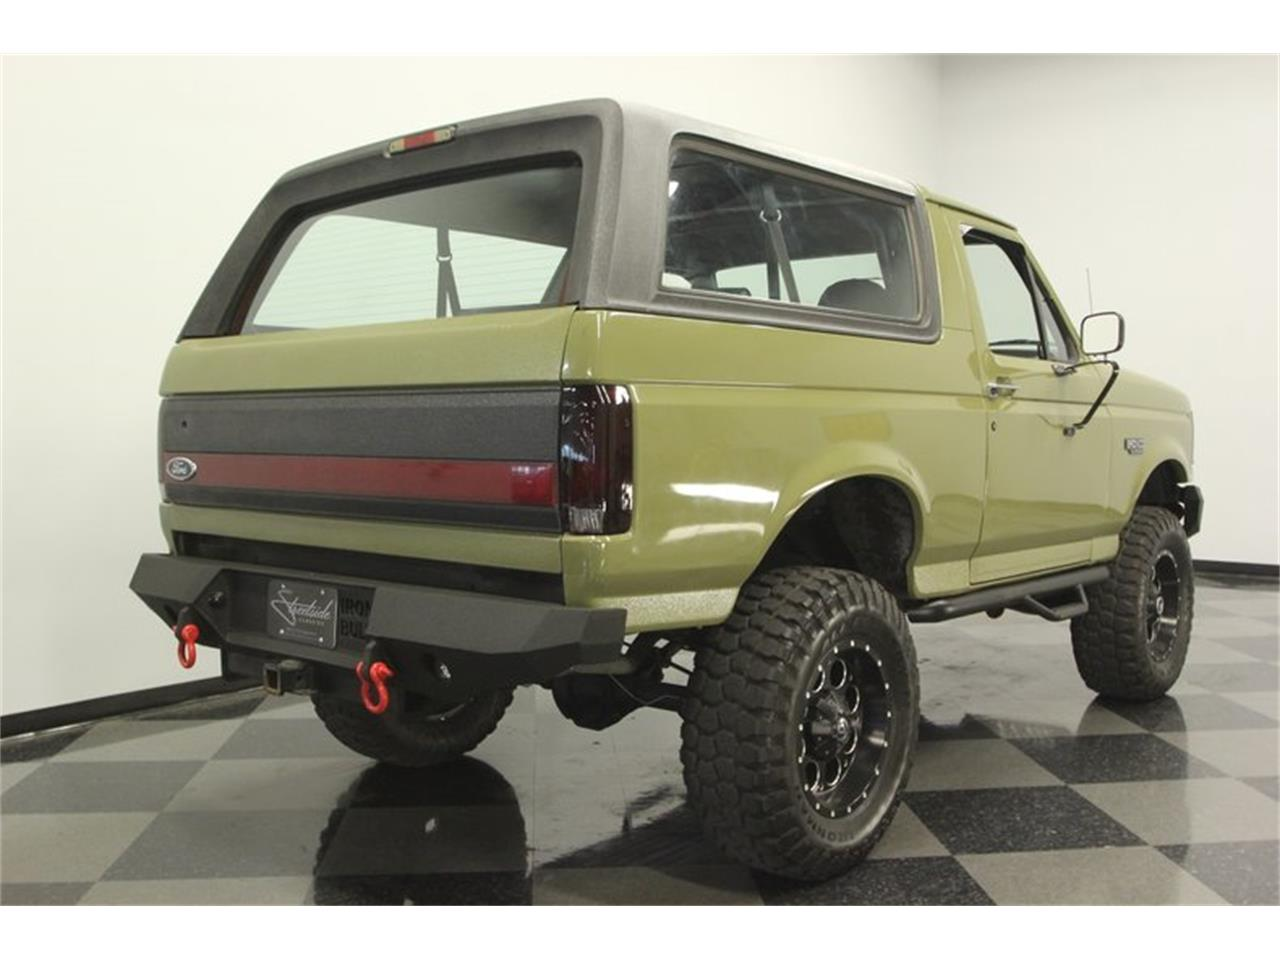 1996 Ford Bronco for sale in Lutz, FL – photo 12